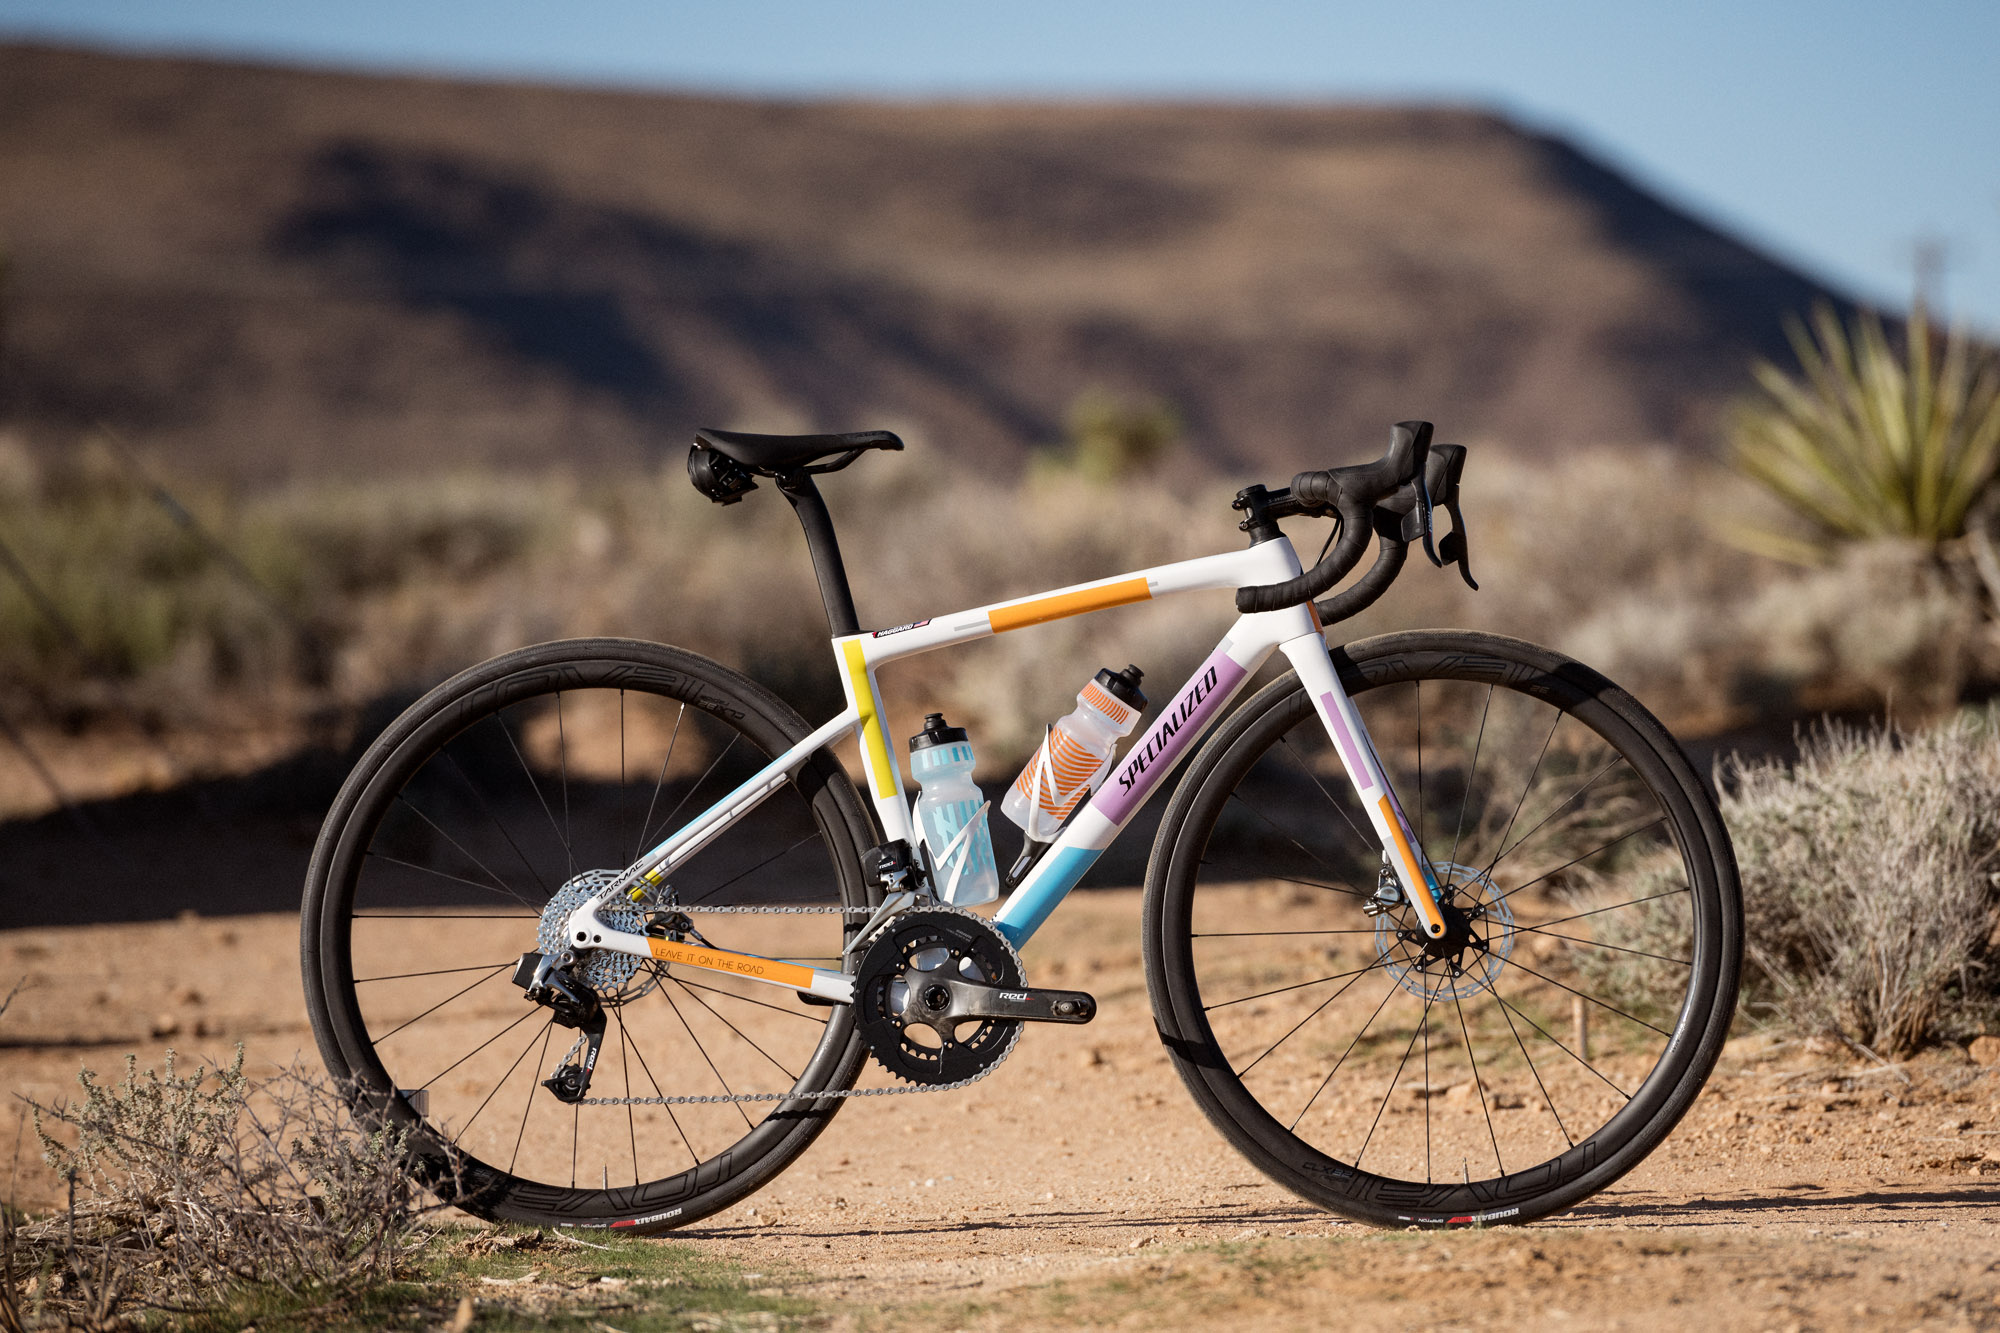 Introducing our 2018 Specialized Tarmac Disc LIOTR edition bikes with SRAM eTap!!